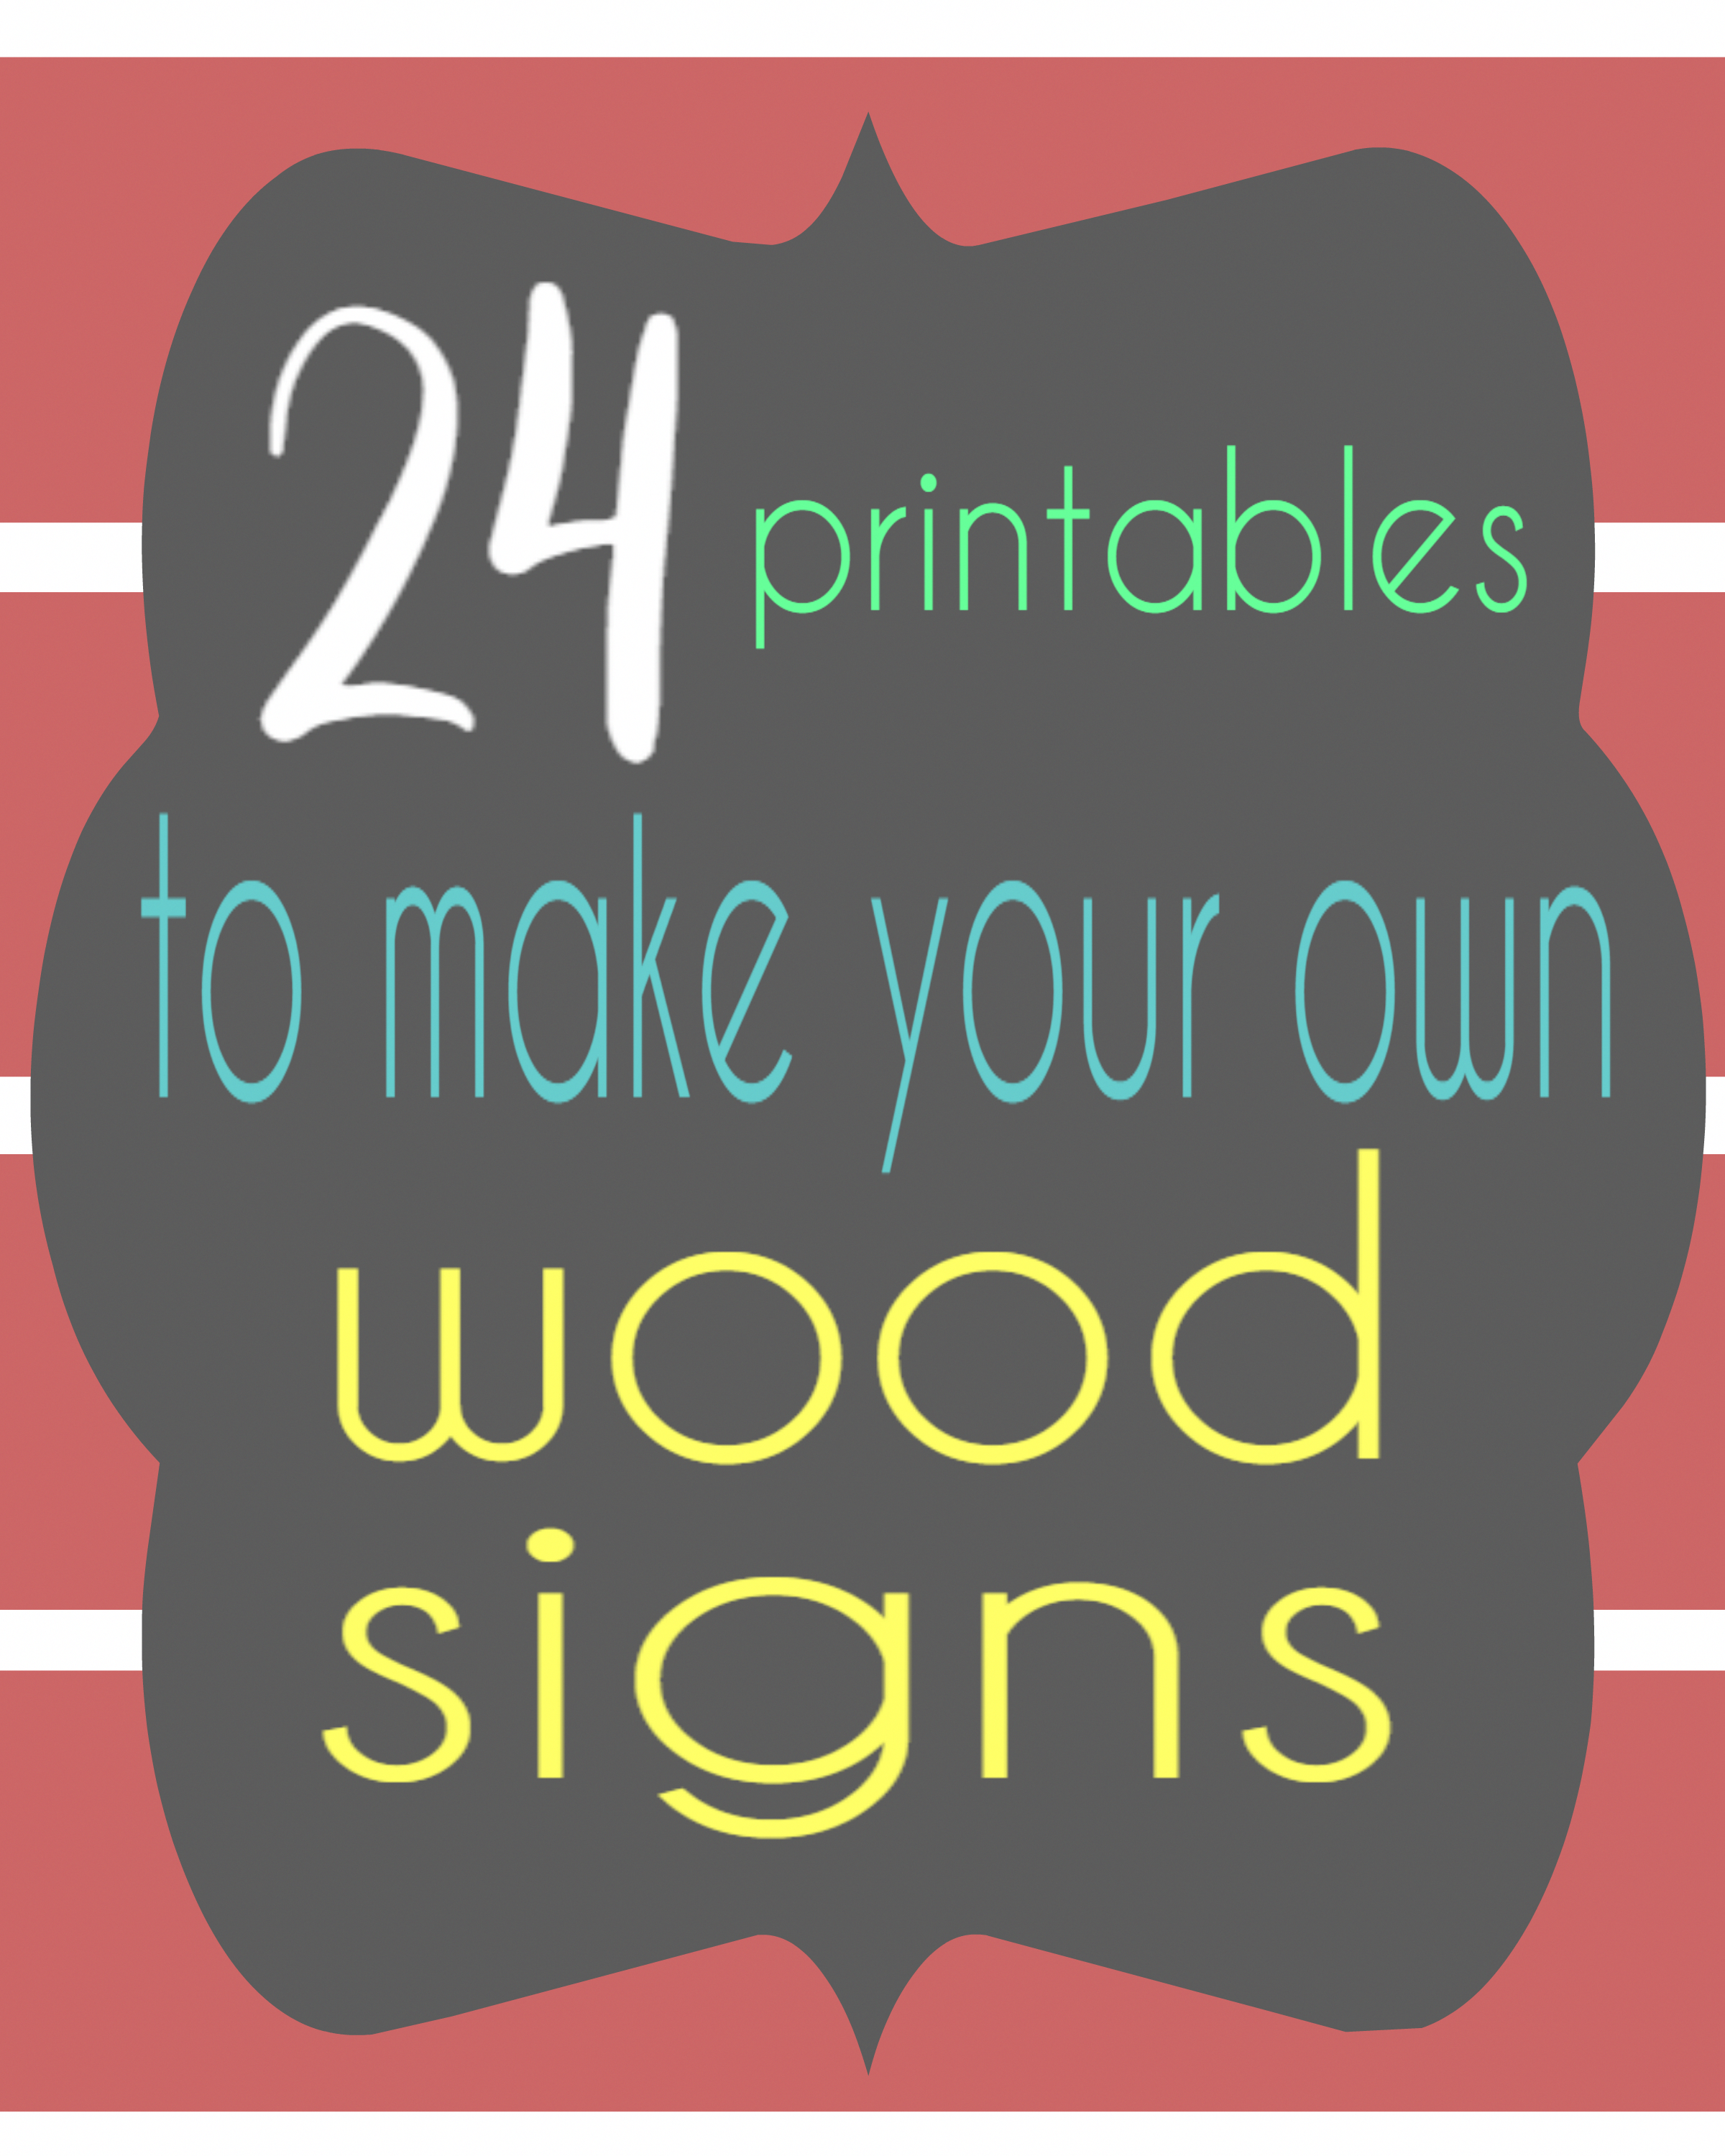 Yes Now I Can Make My Own Wood Signs 24 Printables To